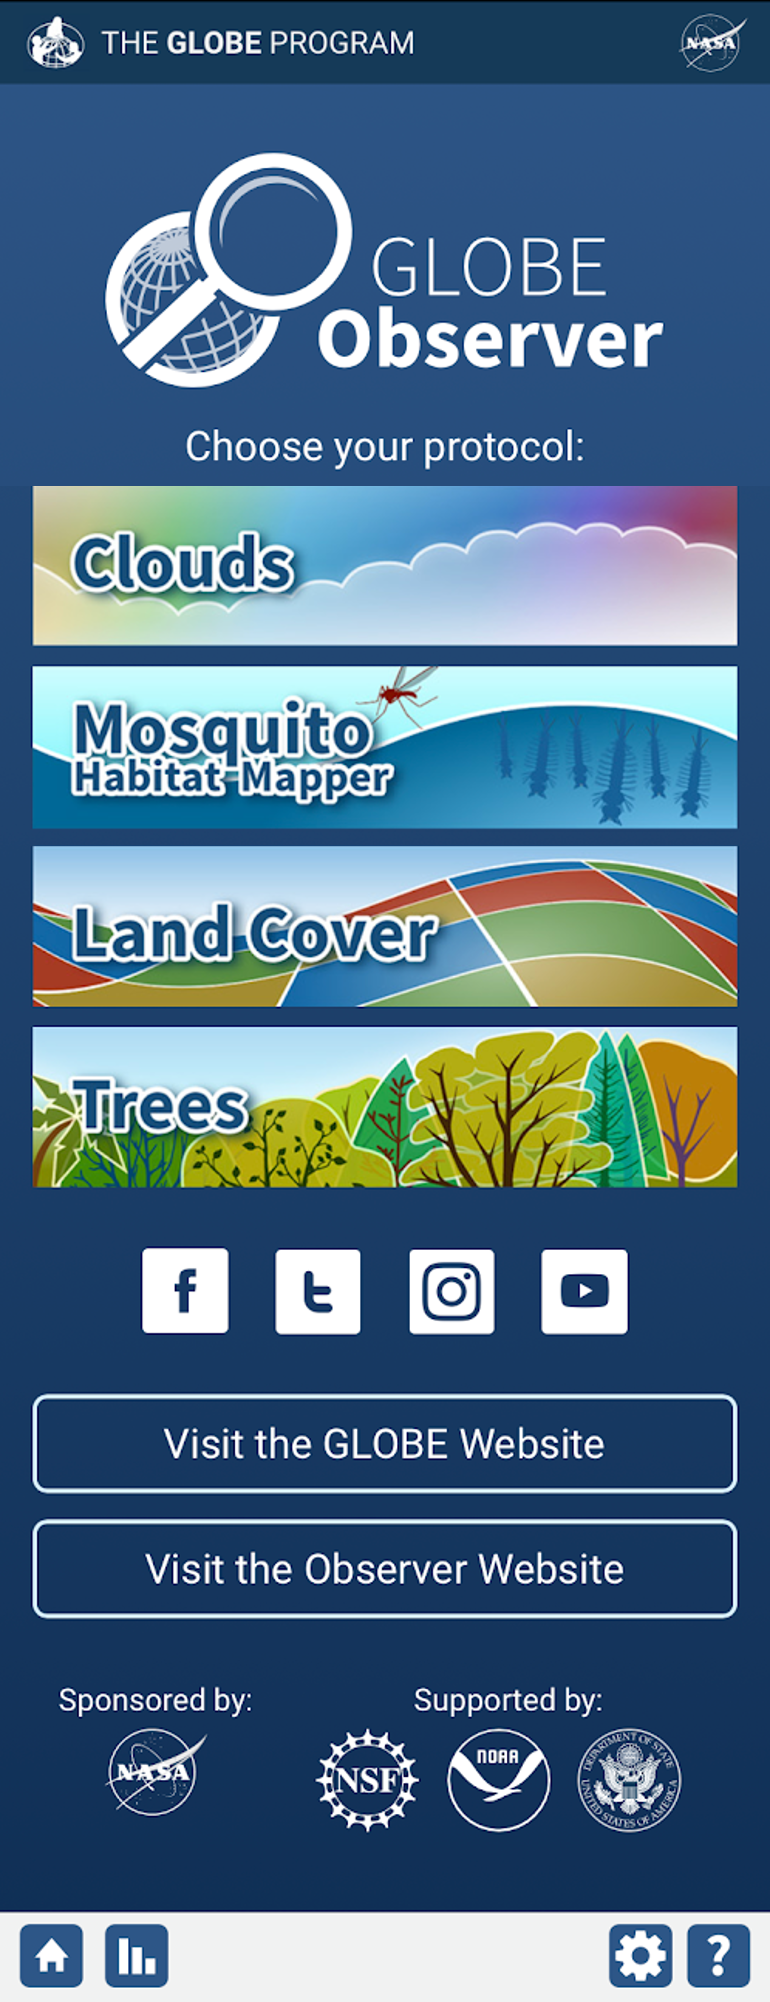 Main screen of the GLOBE Observer app with Clouds, Mosquito Habitat Mapper, Land Cover and Trees.